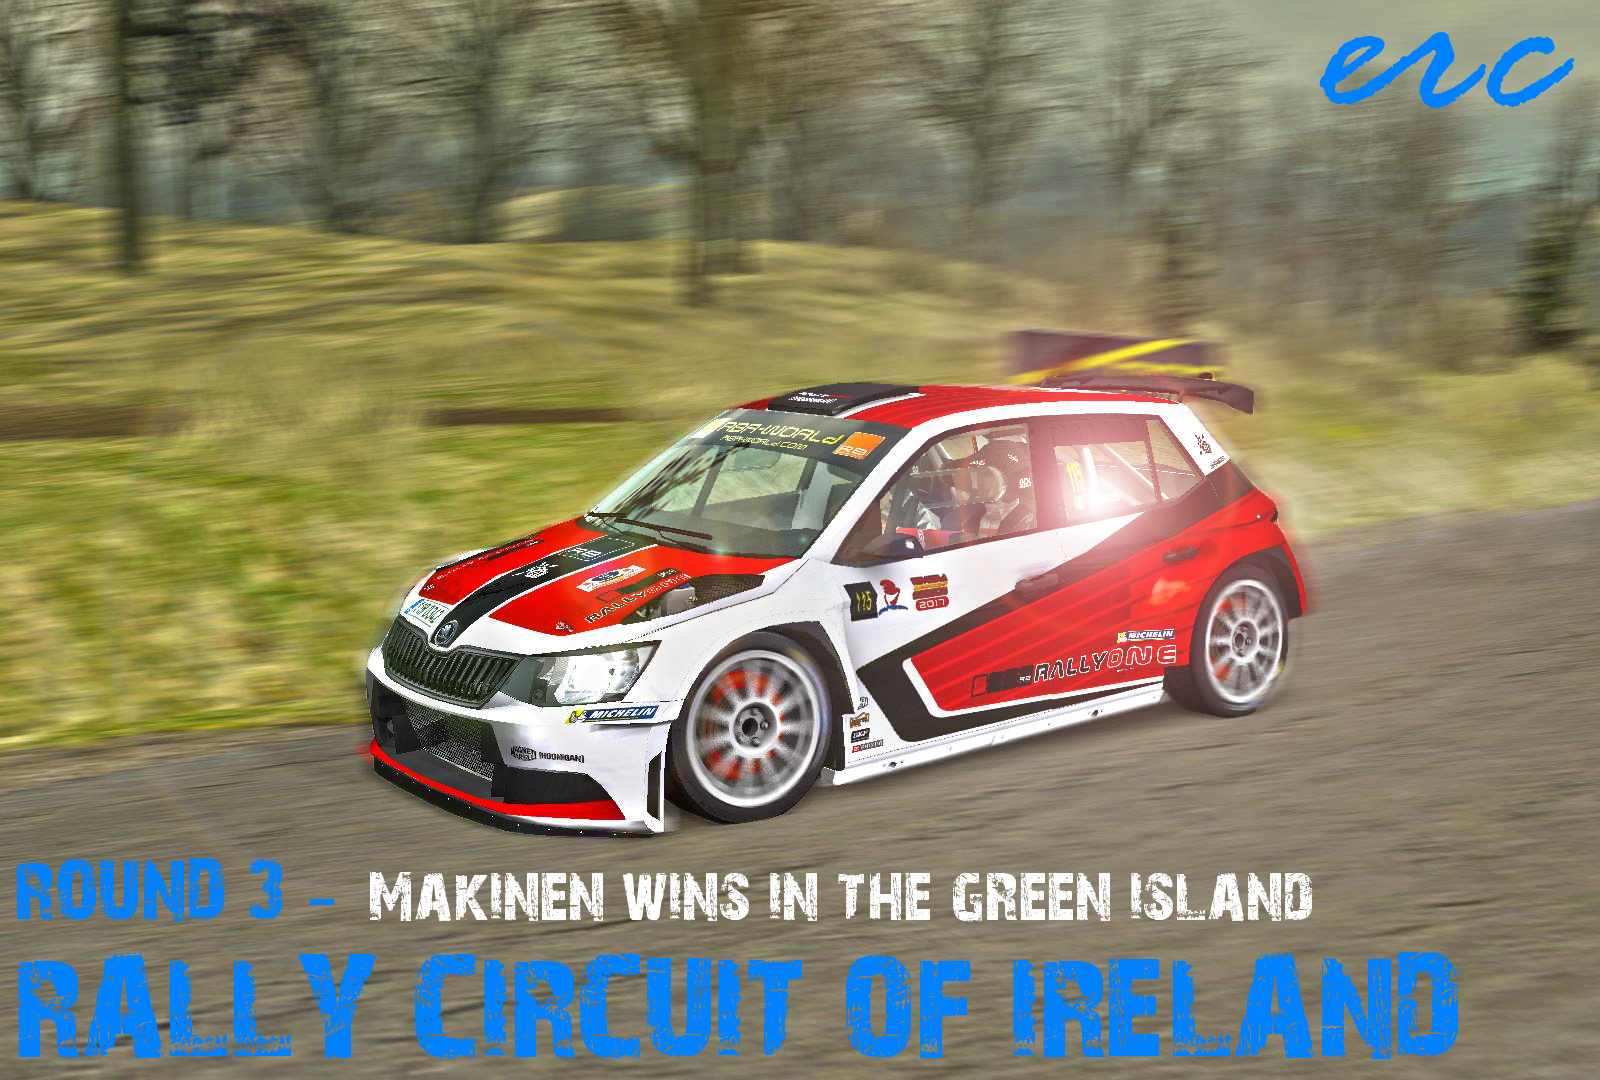 Makinen wins in the green island